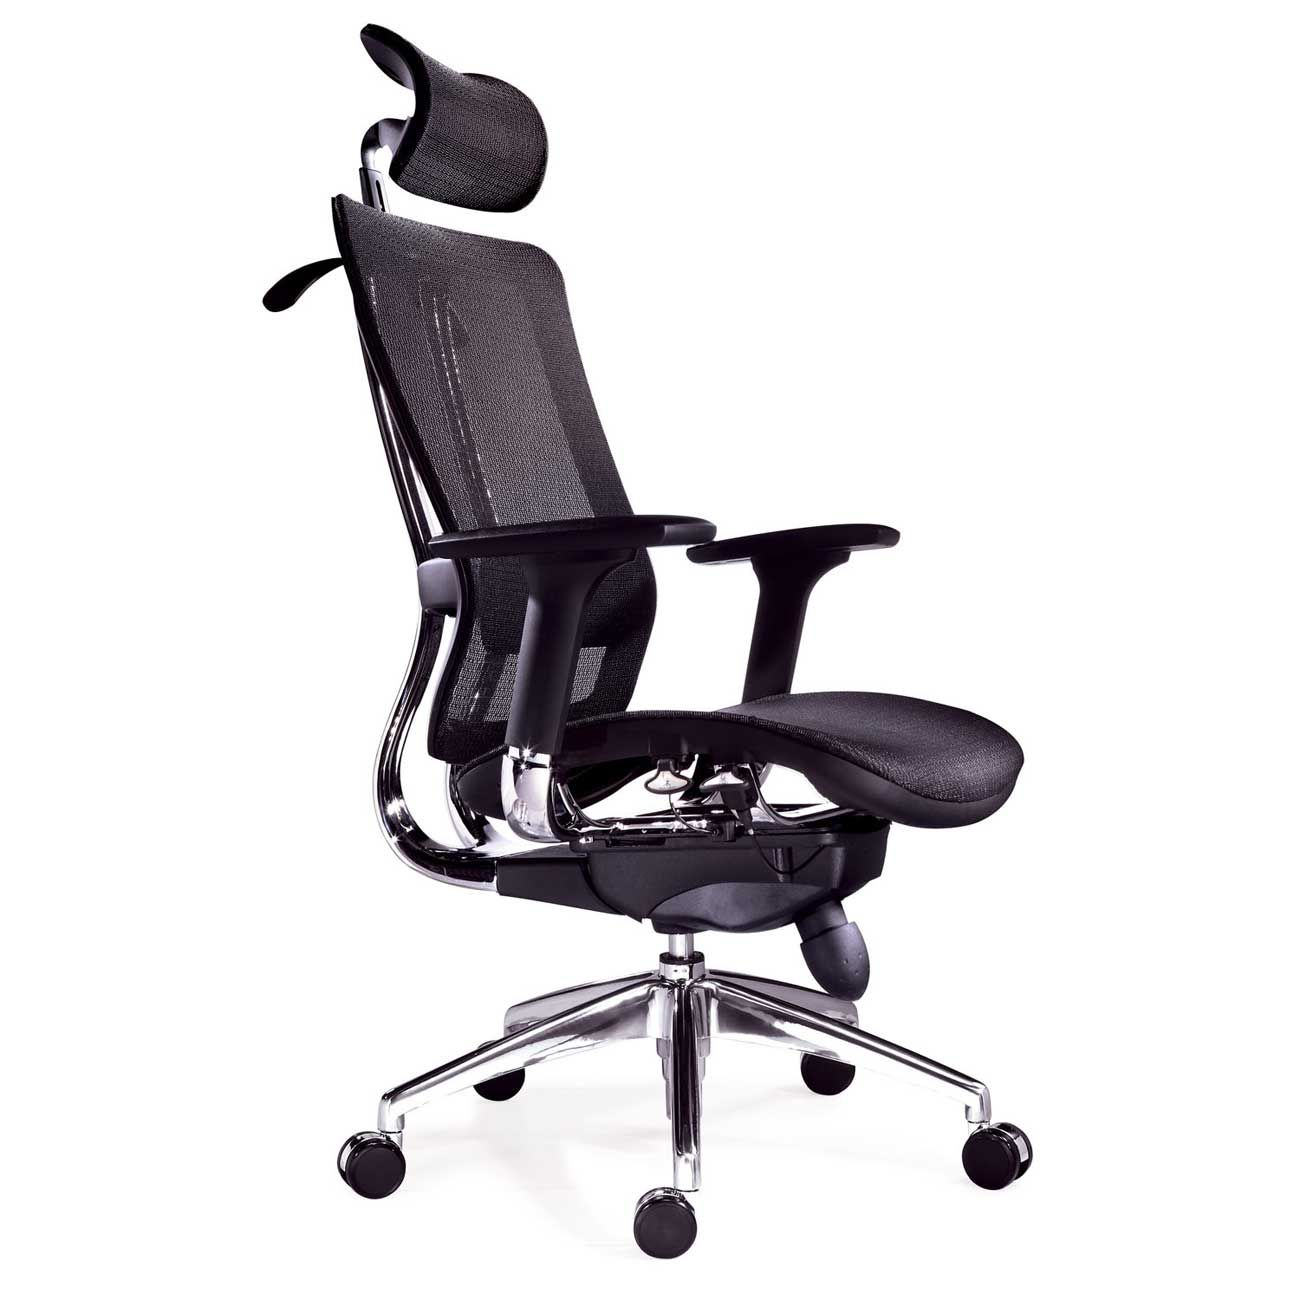 Best Chairs For Back Pain Ergonomic Office Chairs For Lower Back Pain Office Chair